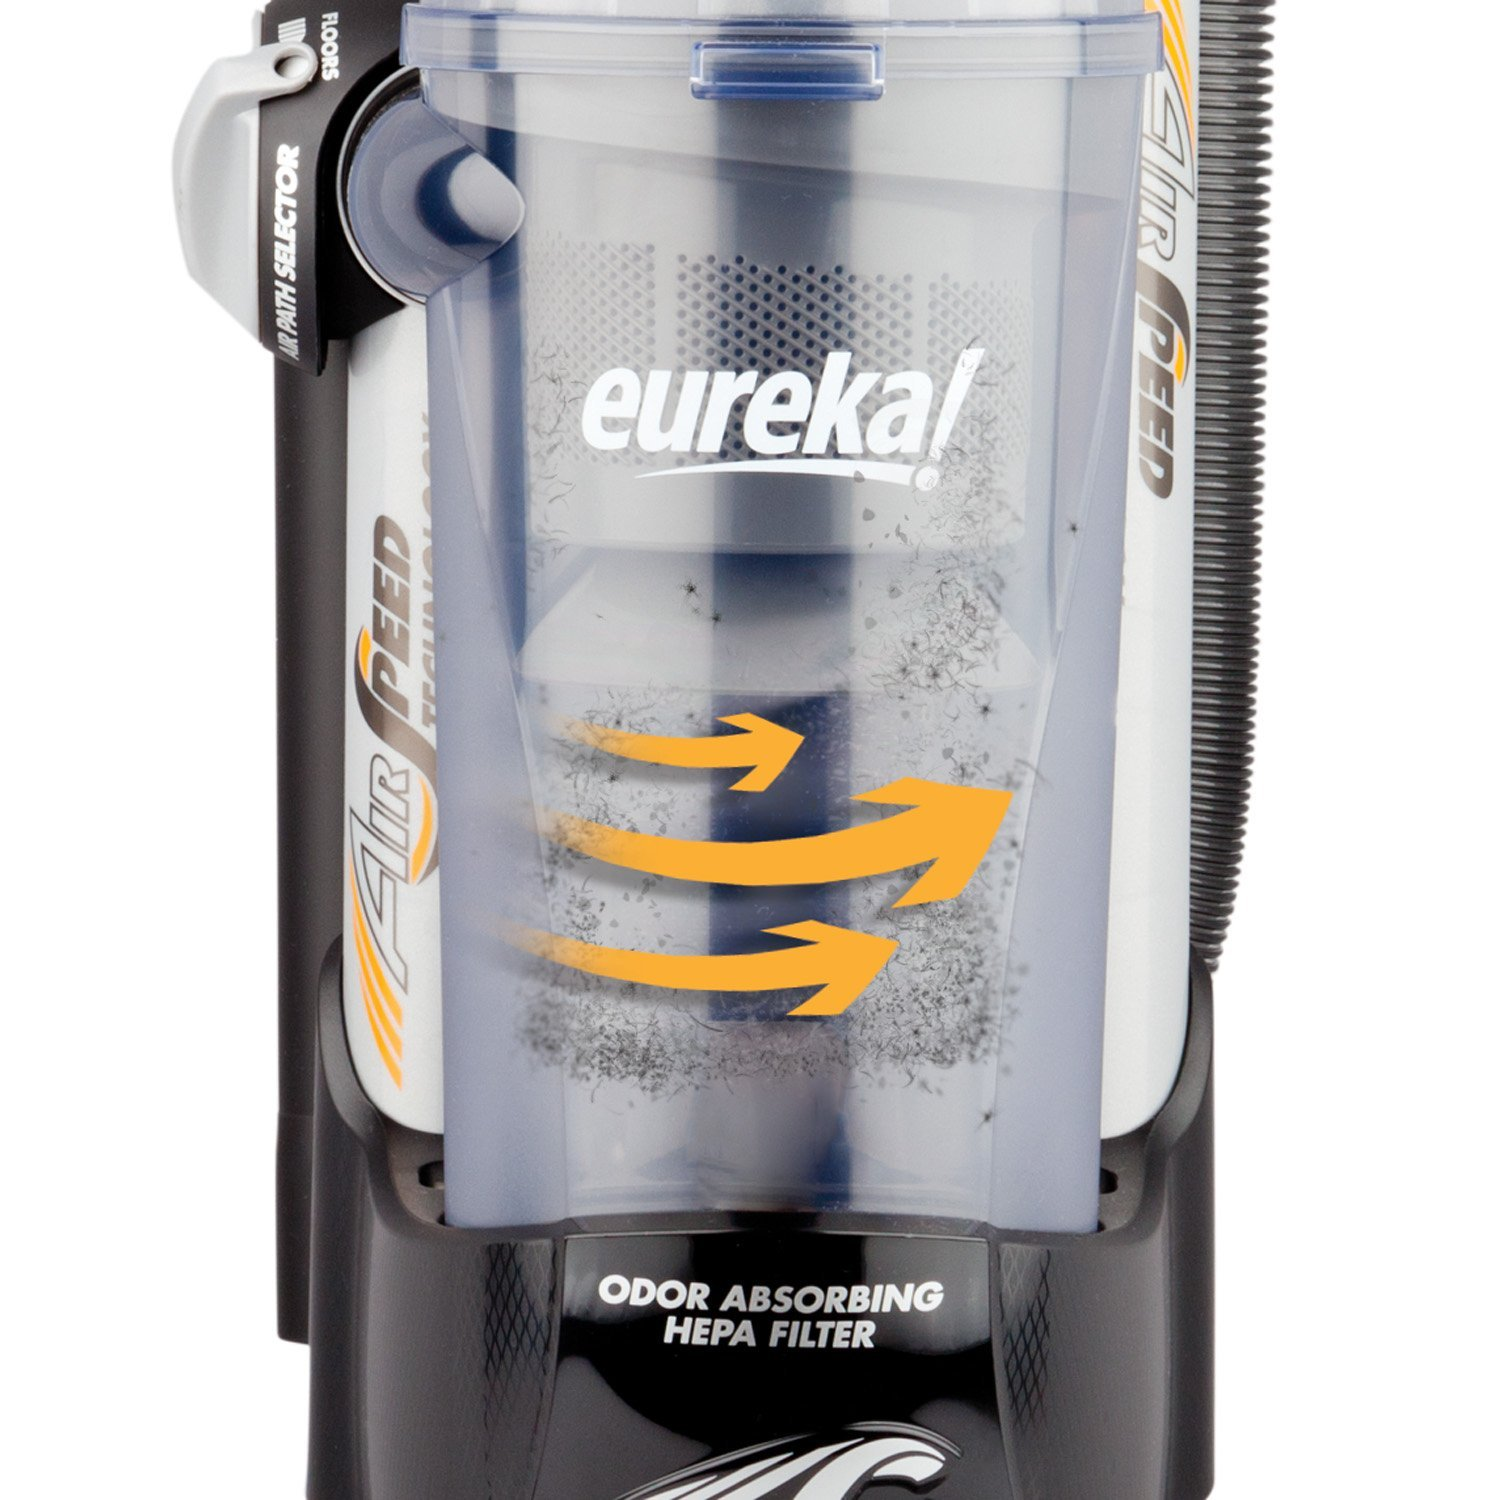 Eureka AirSpeed Pet Power Bagless Upright Vacuum With On